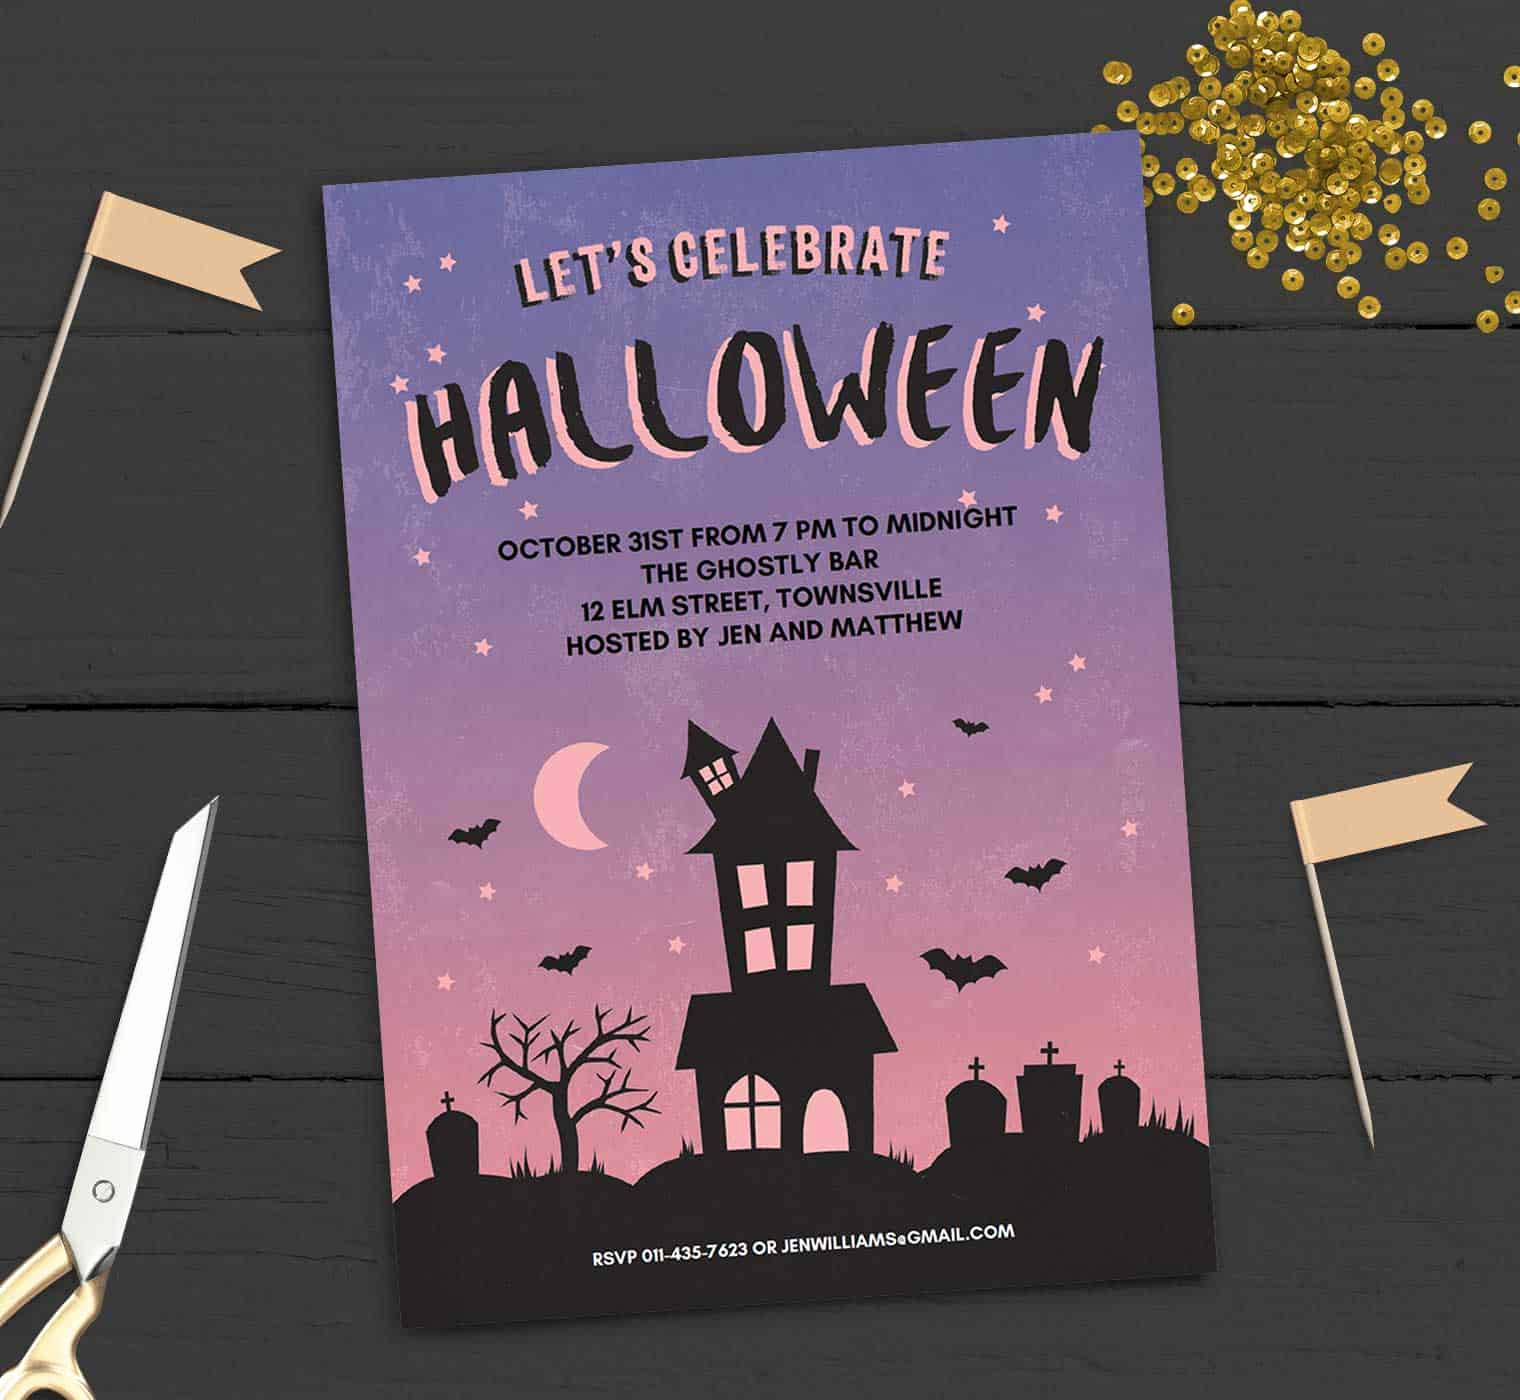 Halloween Party Invitation Template Awesome Free Printable Halloween Party Invitation Haunted House